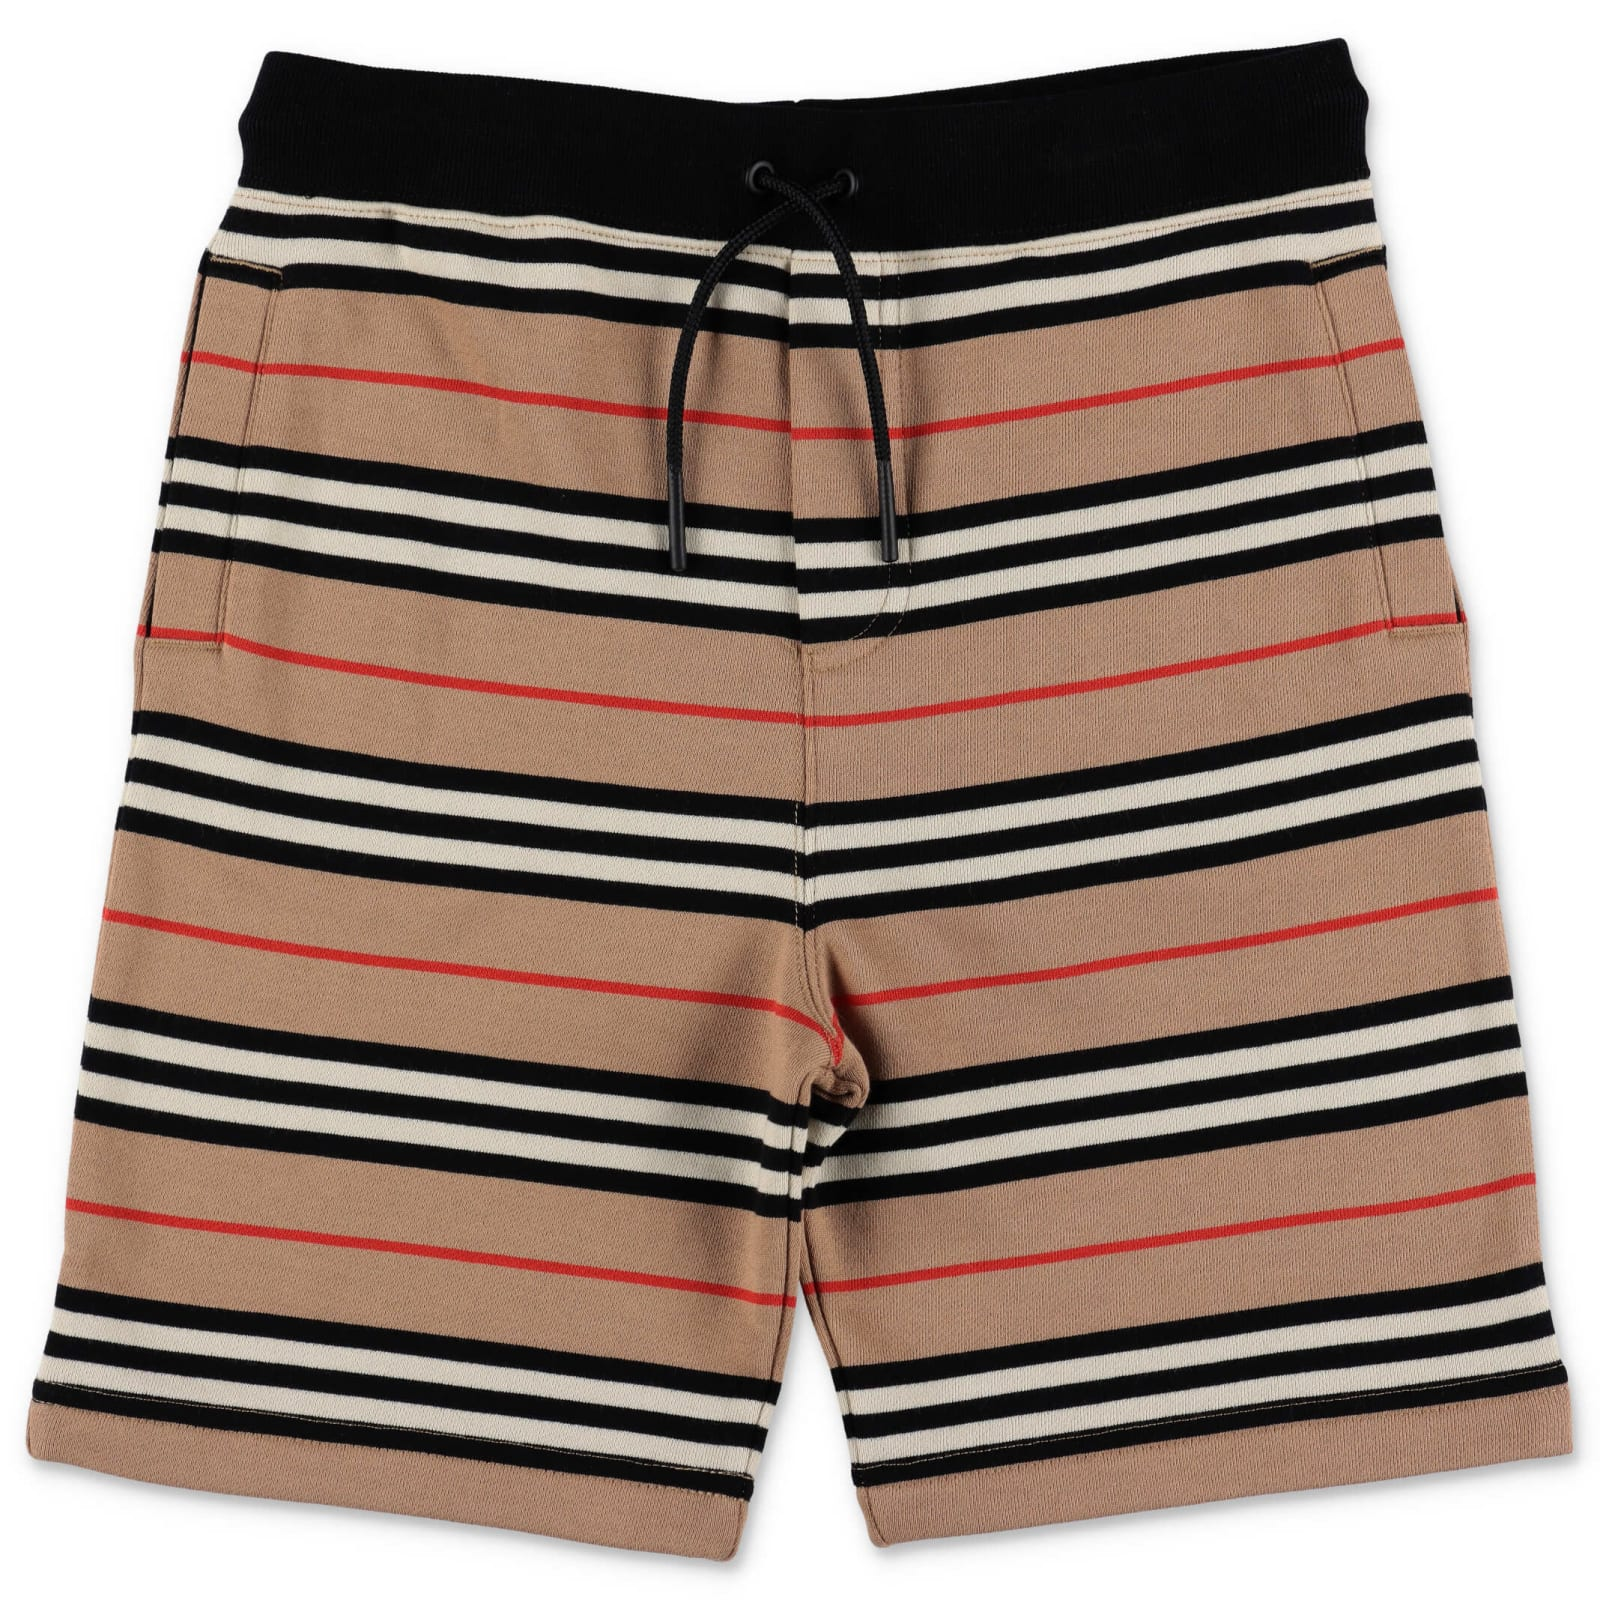 Burberry Kids' Bottoms In Check